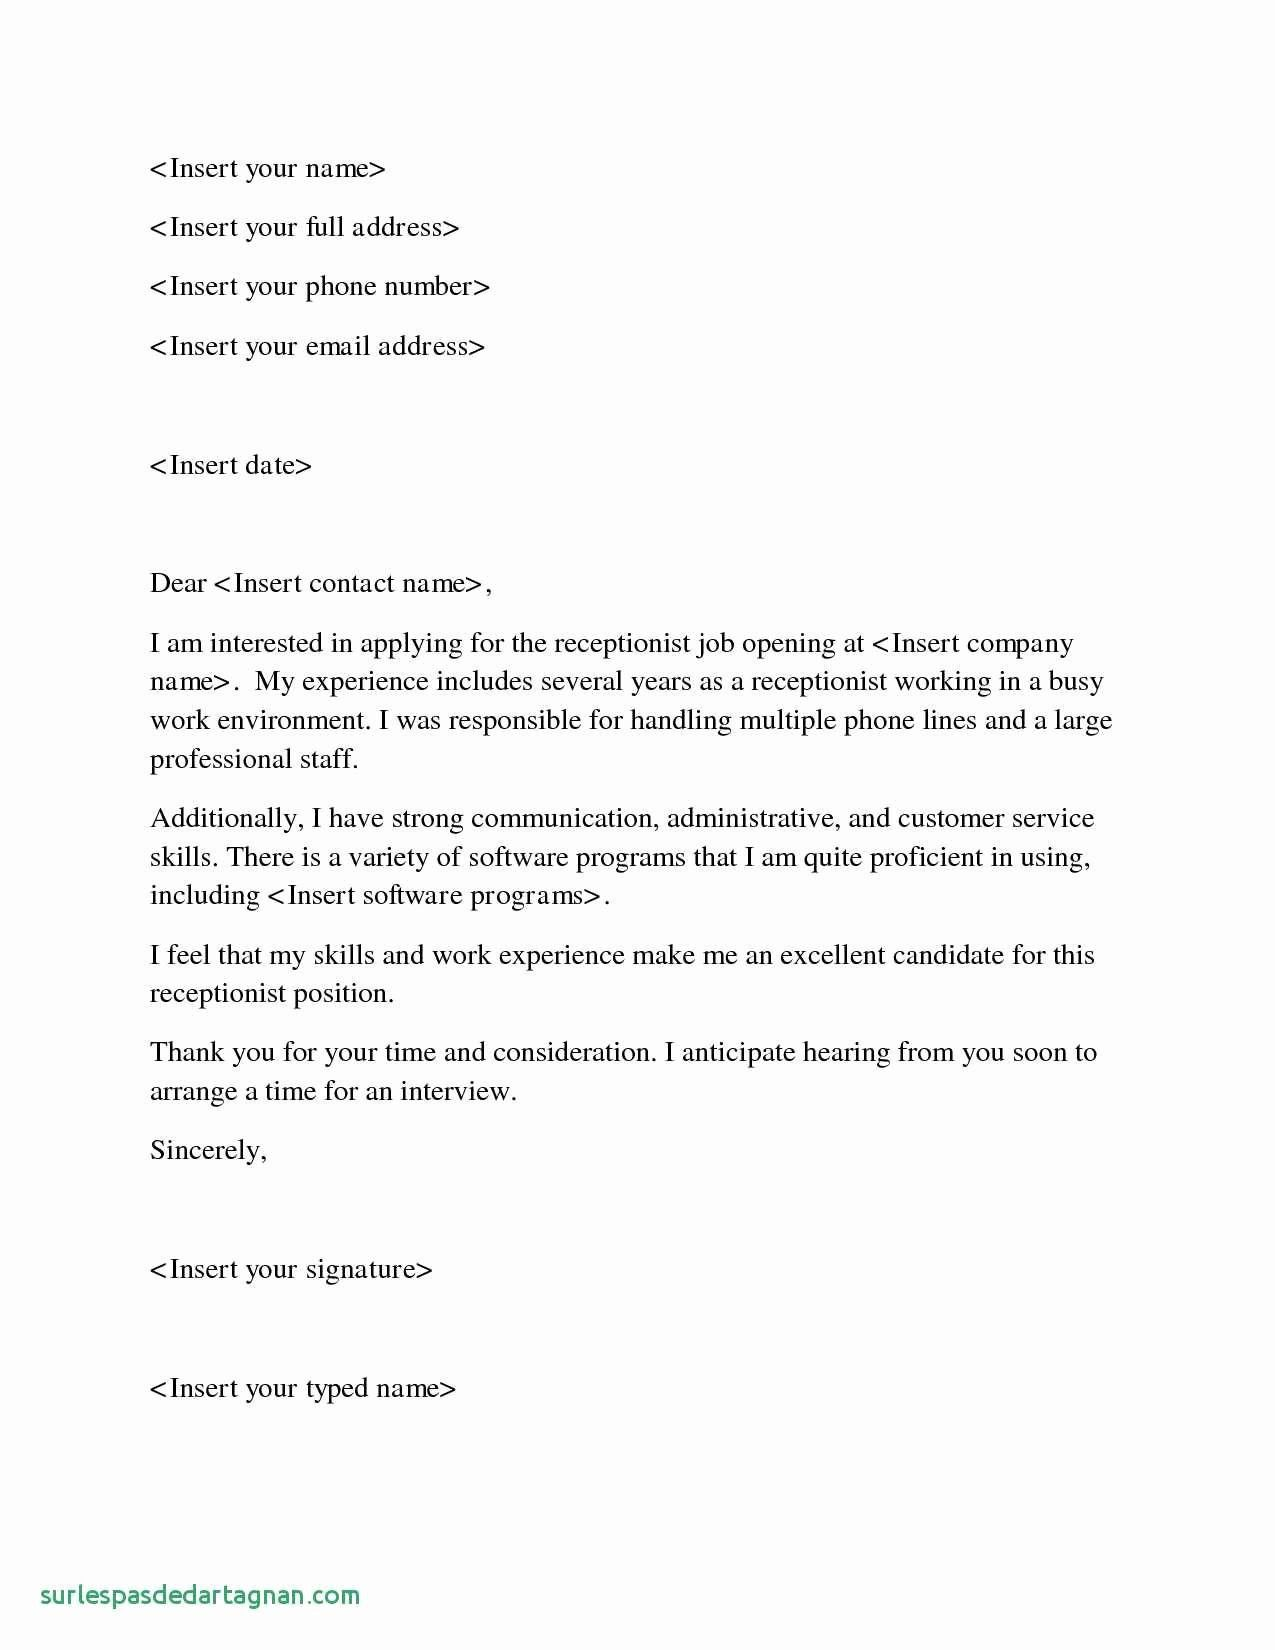 Receptionist Cover Letter With Experience 26 Medical Receptionist Cover Letter Medical Receptionist Cover